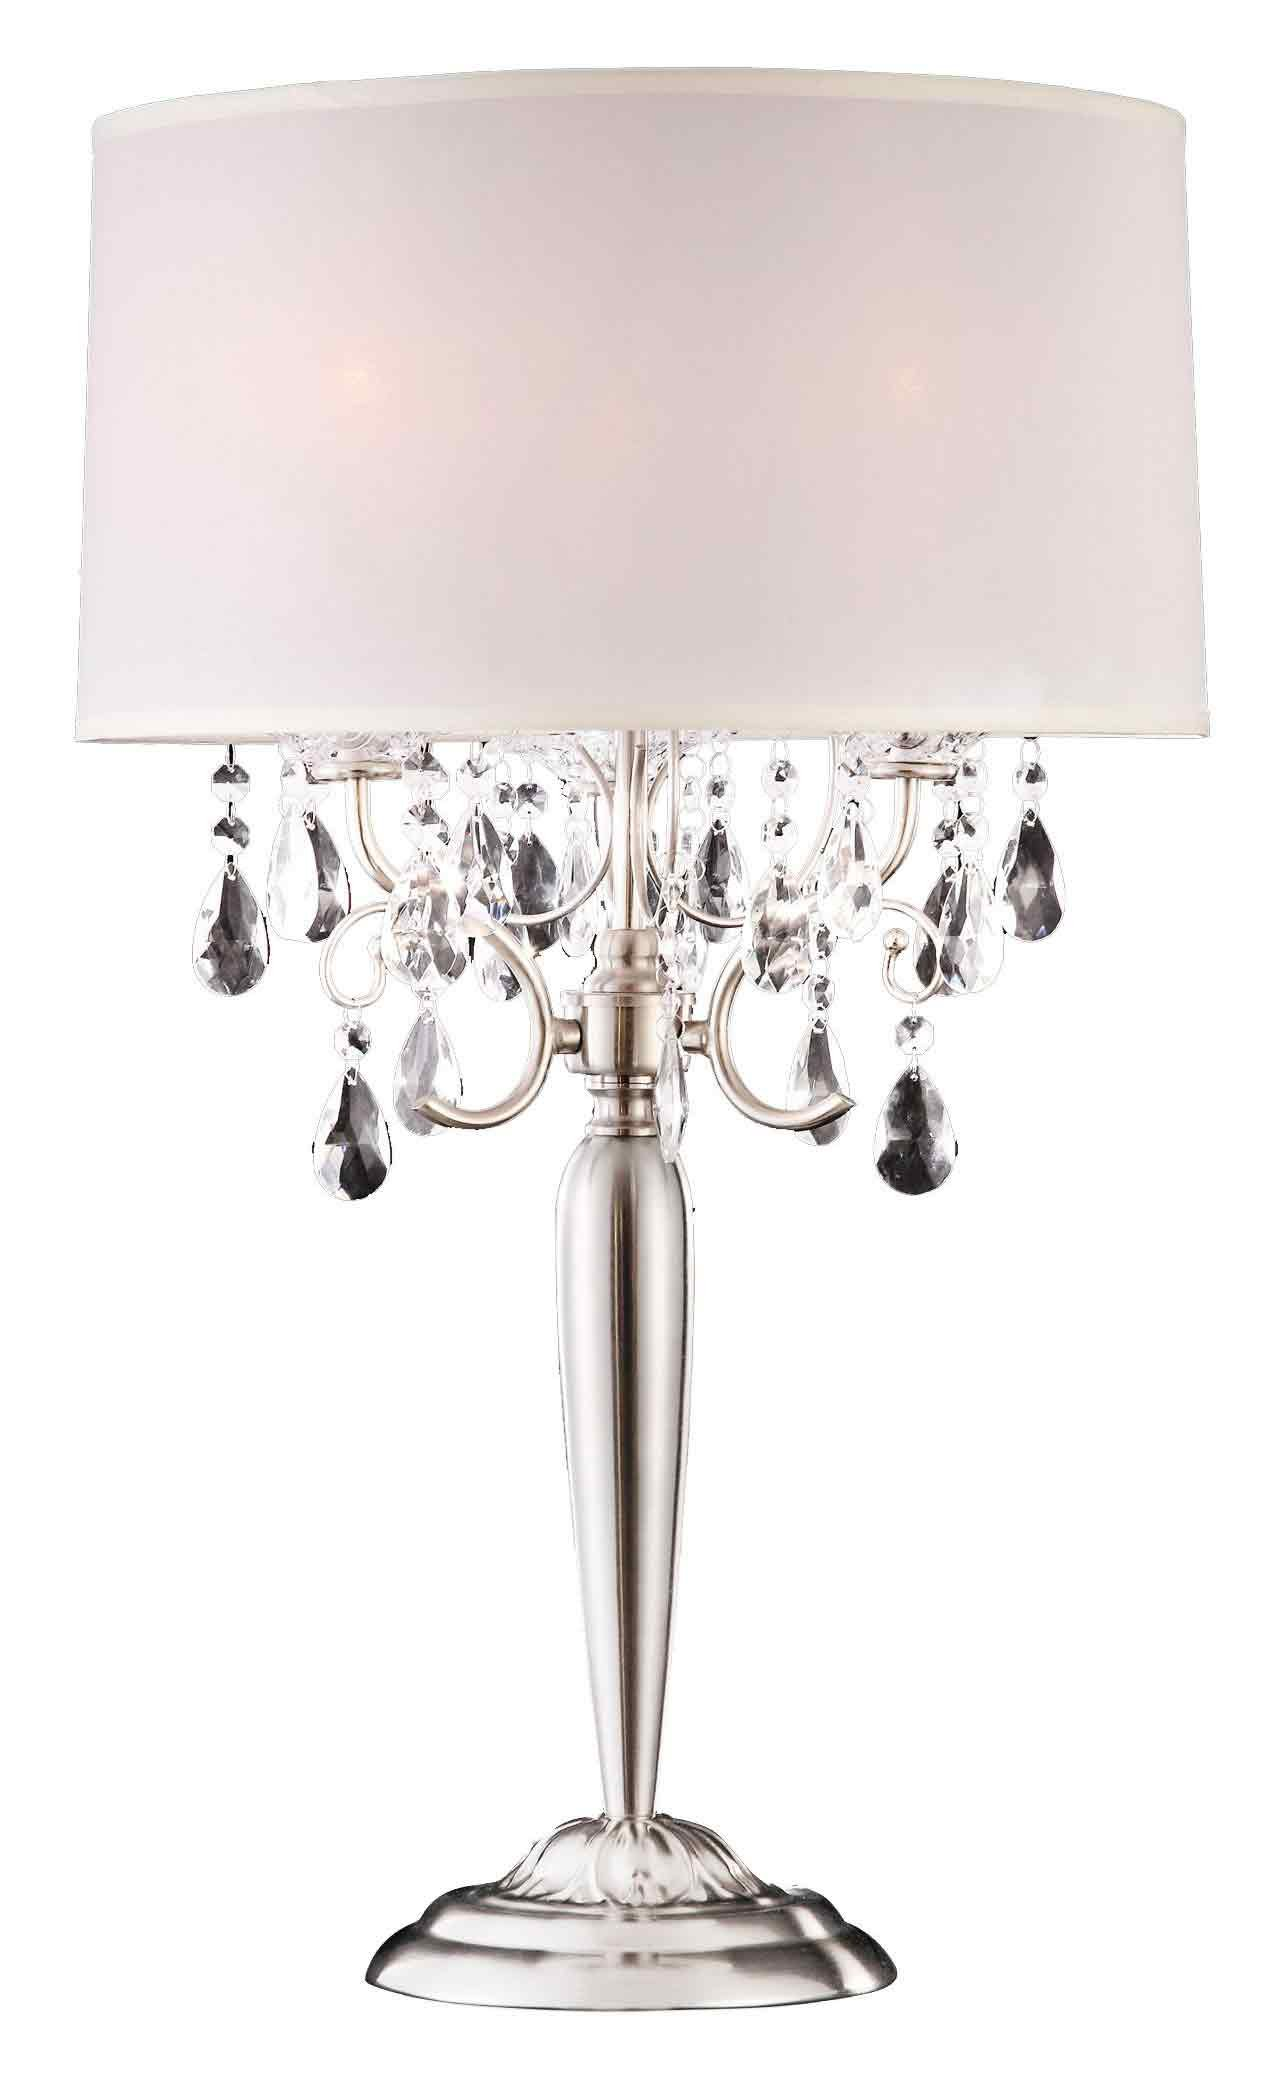 Ore International K-5109T 29.5-Inch Crystal Table Lamp, Silver by ORE (Image #1)